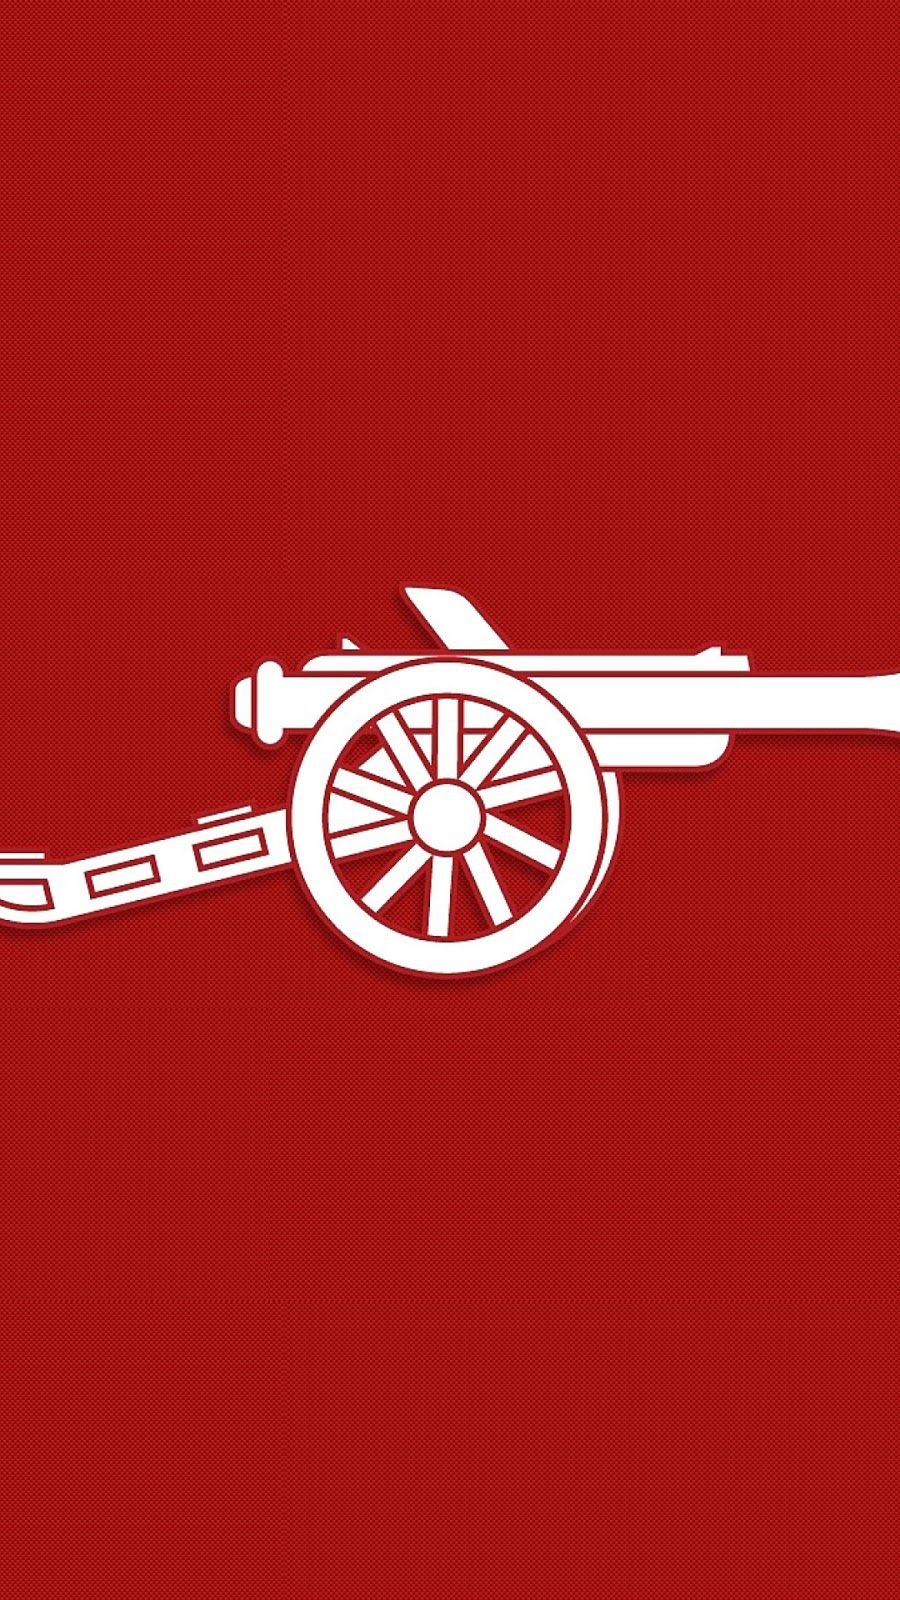 Arsenal Wallpaper Hd For Iphone X Series Arsenal Wallpapers Arsenal Logo Wallpapers Arsenal Logo